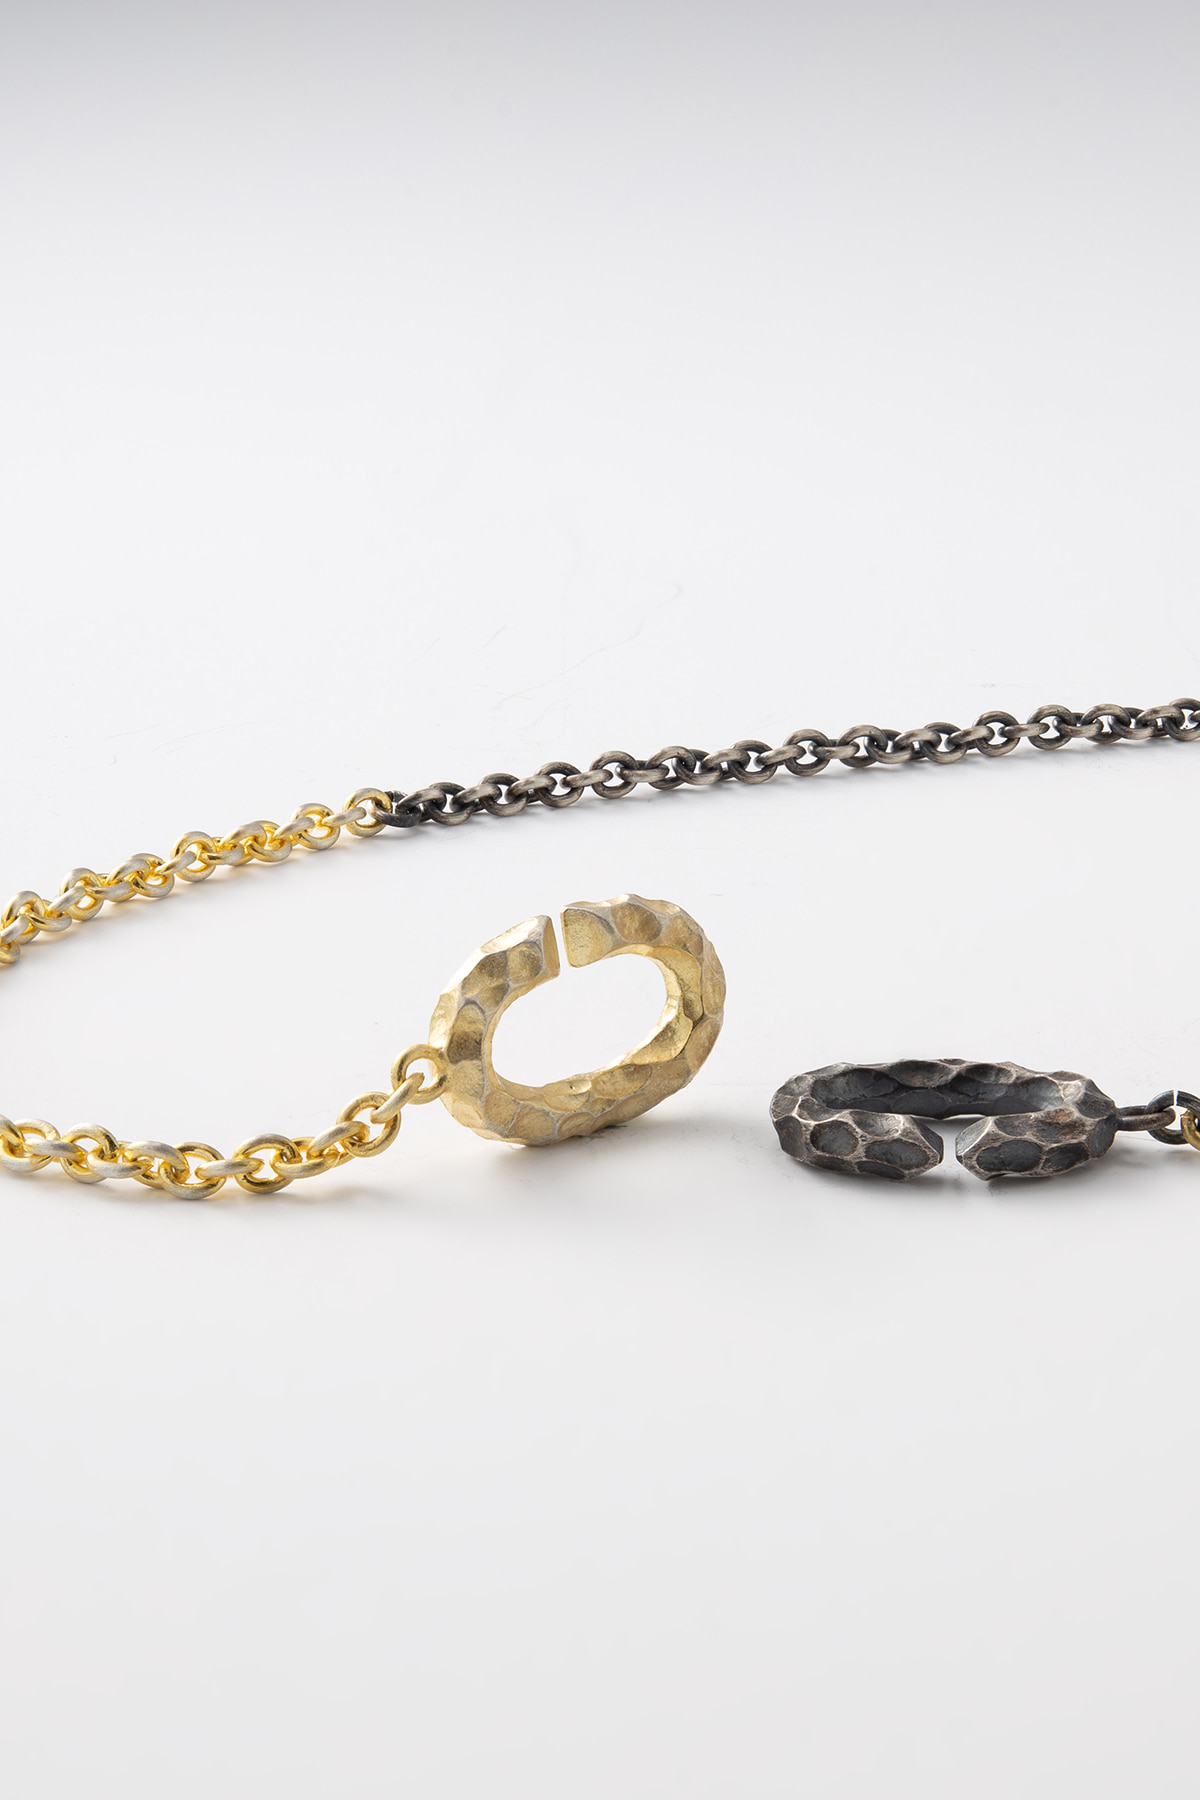 Black and Gold Clasp Design Necklace Ver.crater